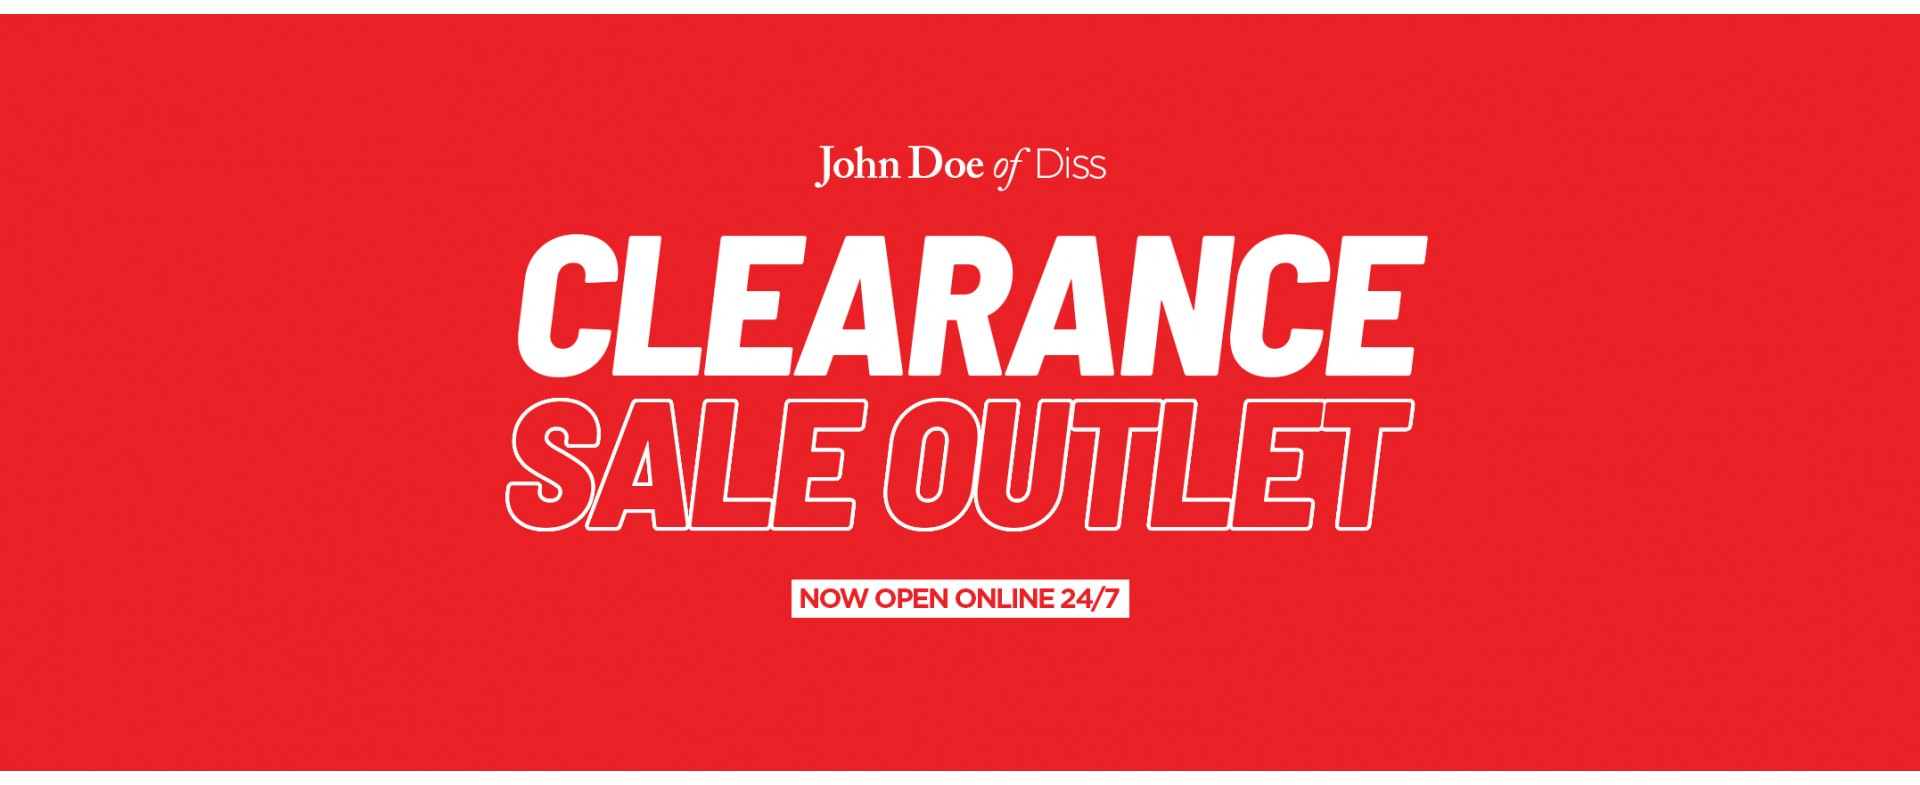 Clearance Sale Outlet